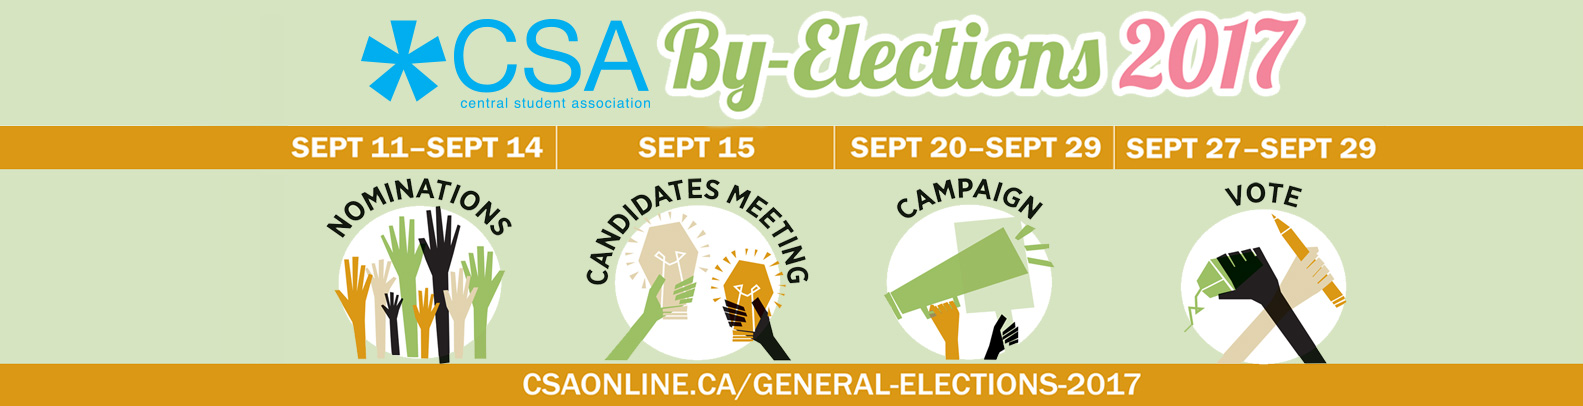 CSA Fall 2017 By-Elections